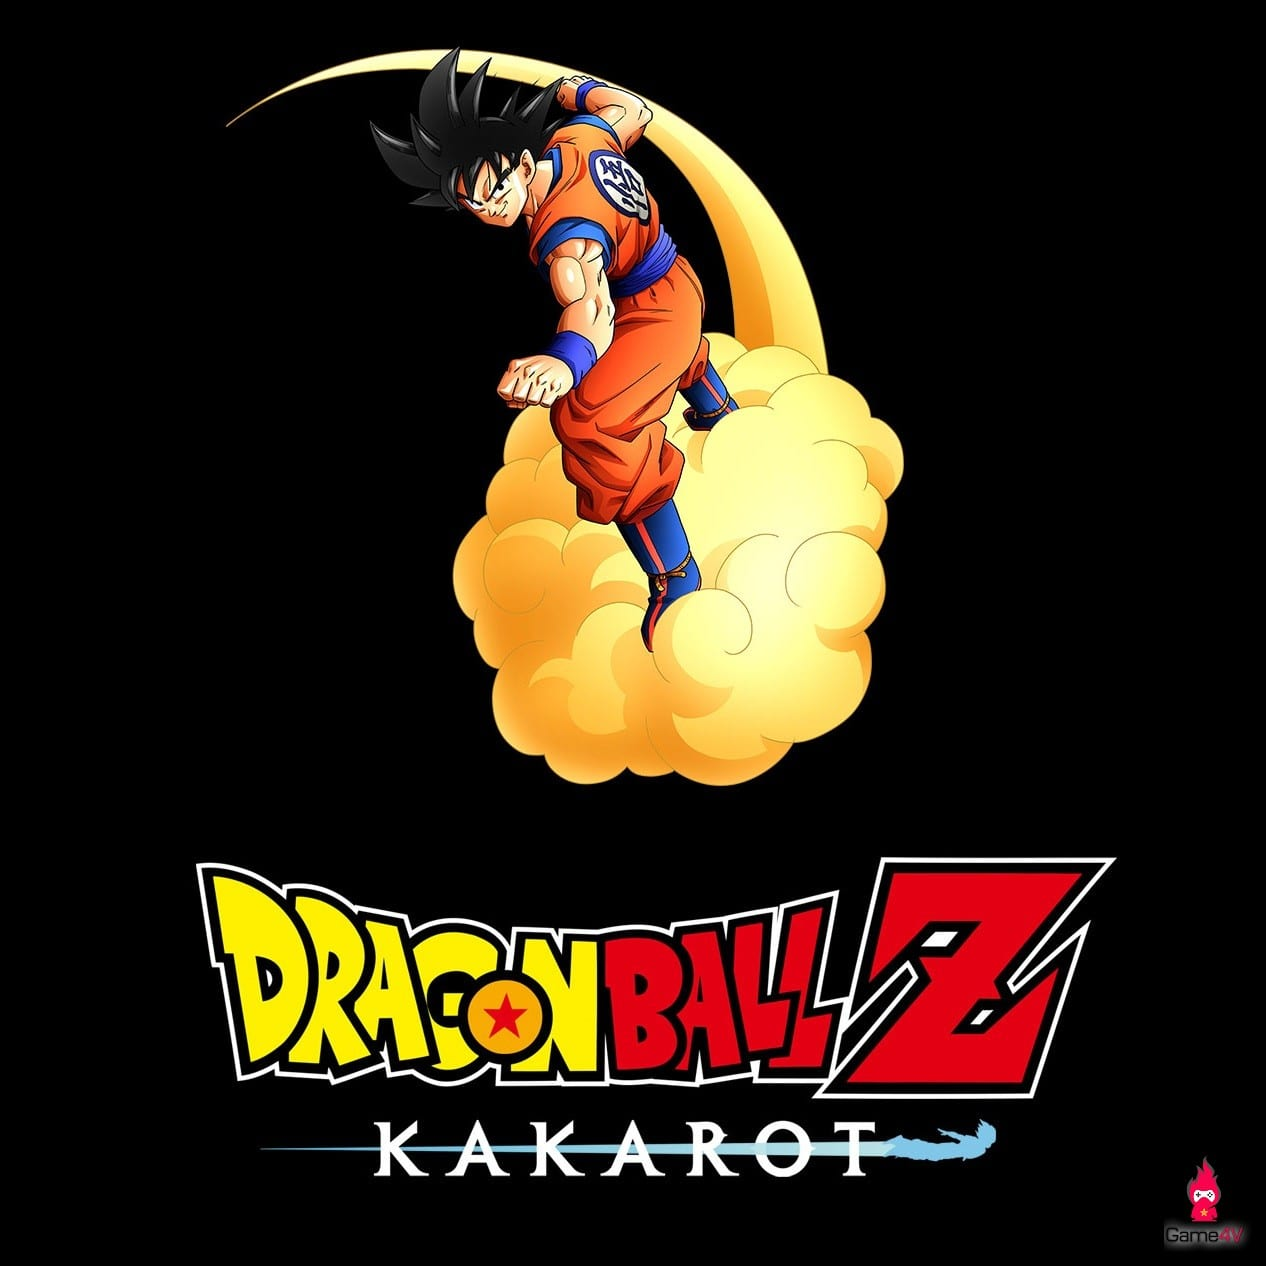 Dragon Ball Z Kakarot full Crack